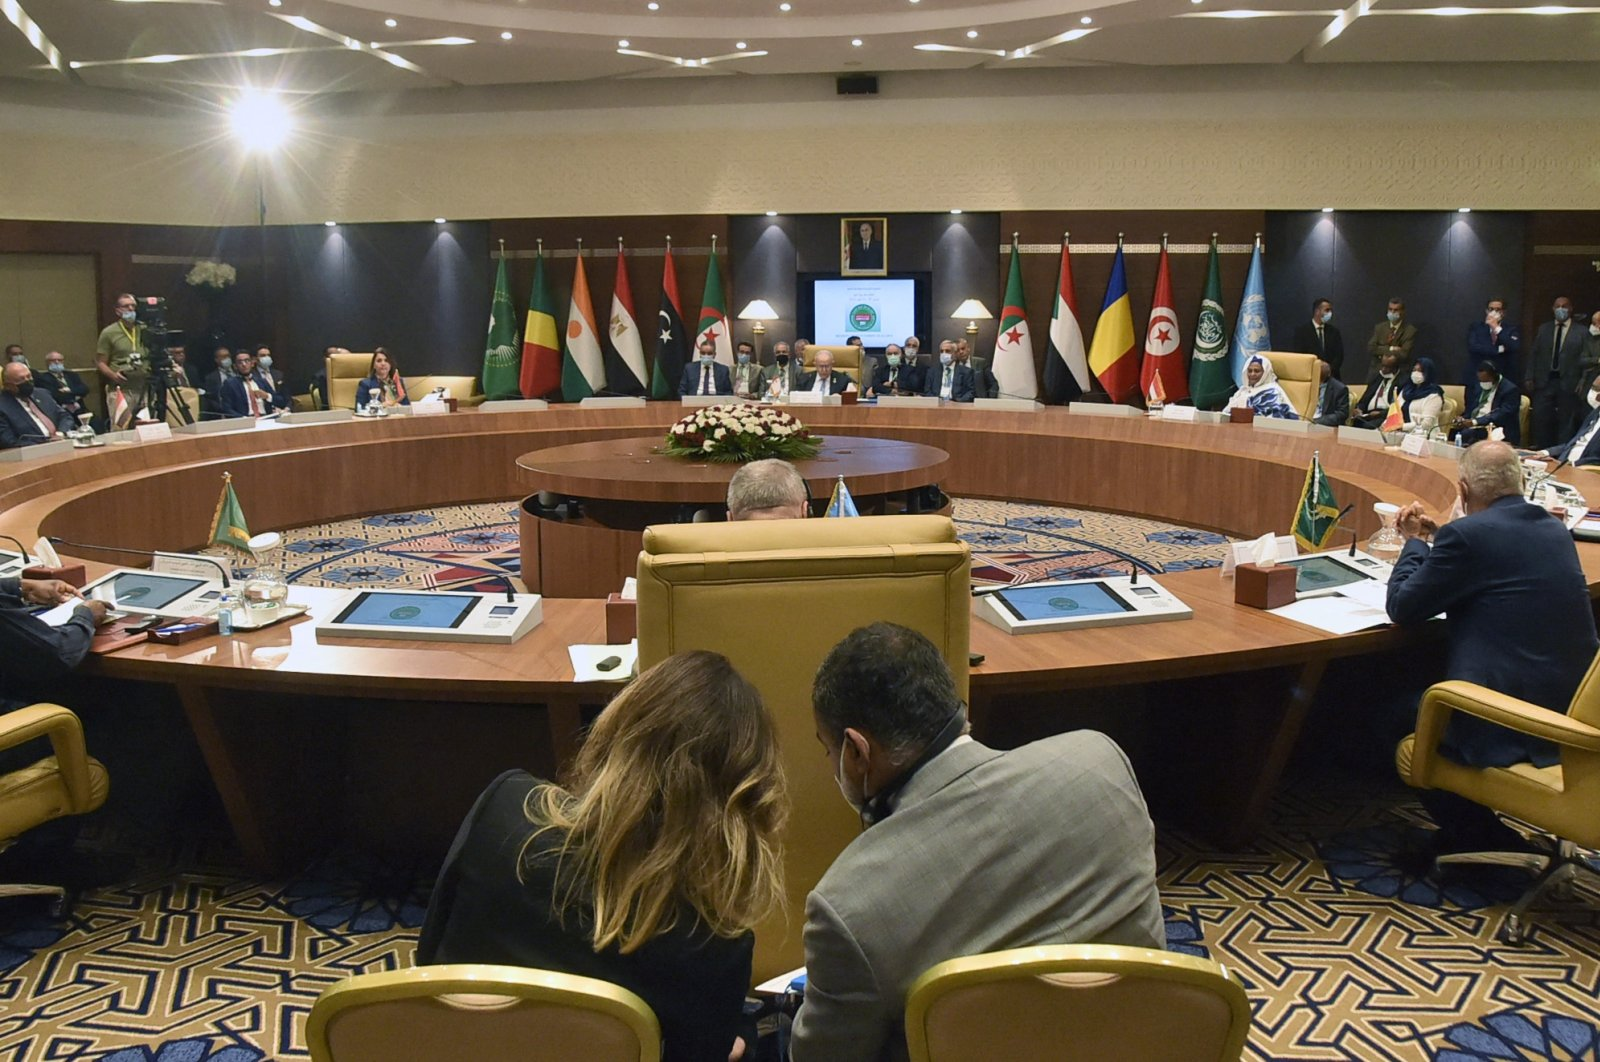 Officials attend a meeting by Libya's neighbors as part of international efforts to reach a political settlement to the country's conflict, in the Algerian capital Algiers, Aug. 30, 2021. (AFP Photo)